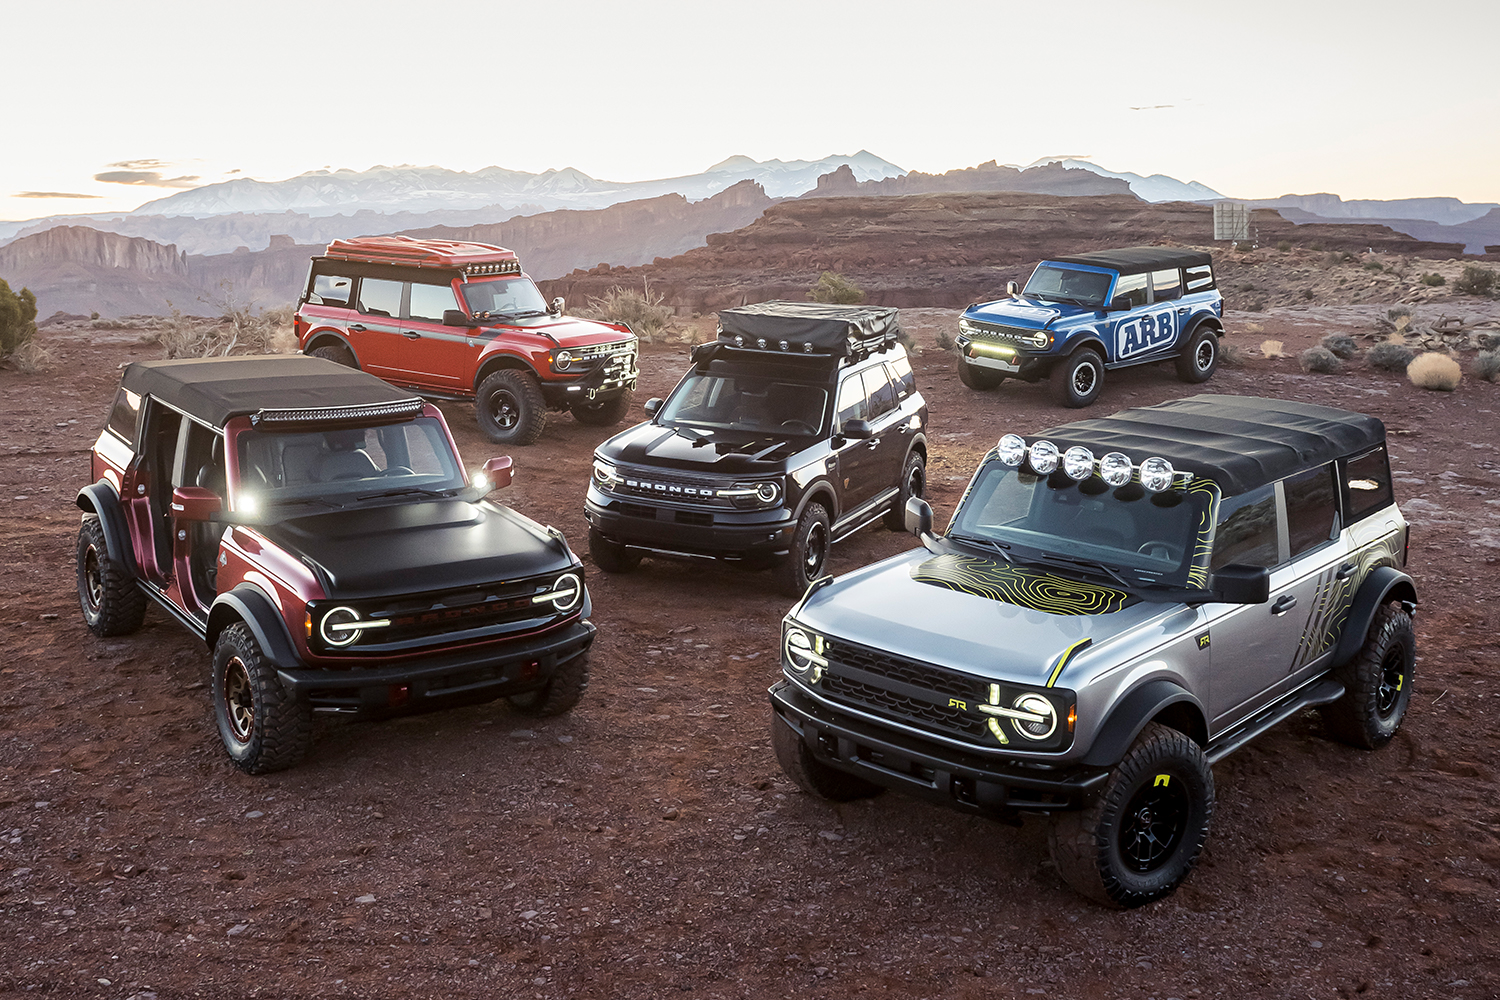 Custom Ford Bronco off-road concepts for the Easter Jeep Safari